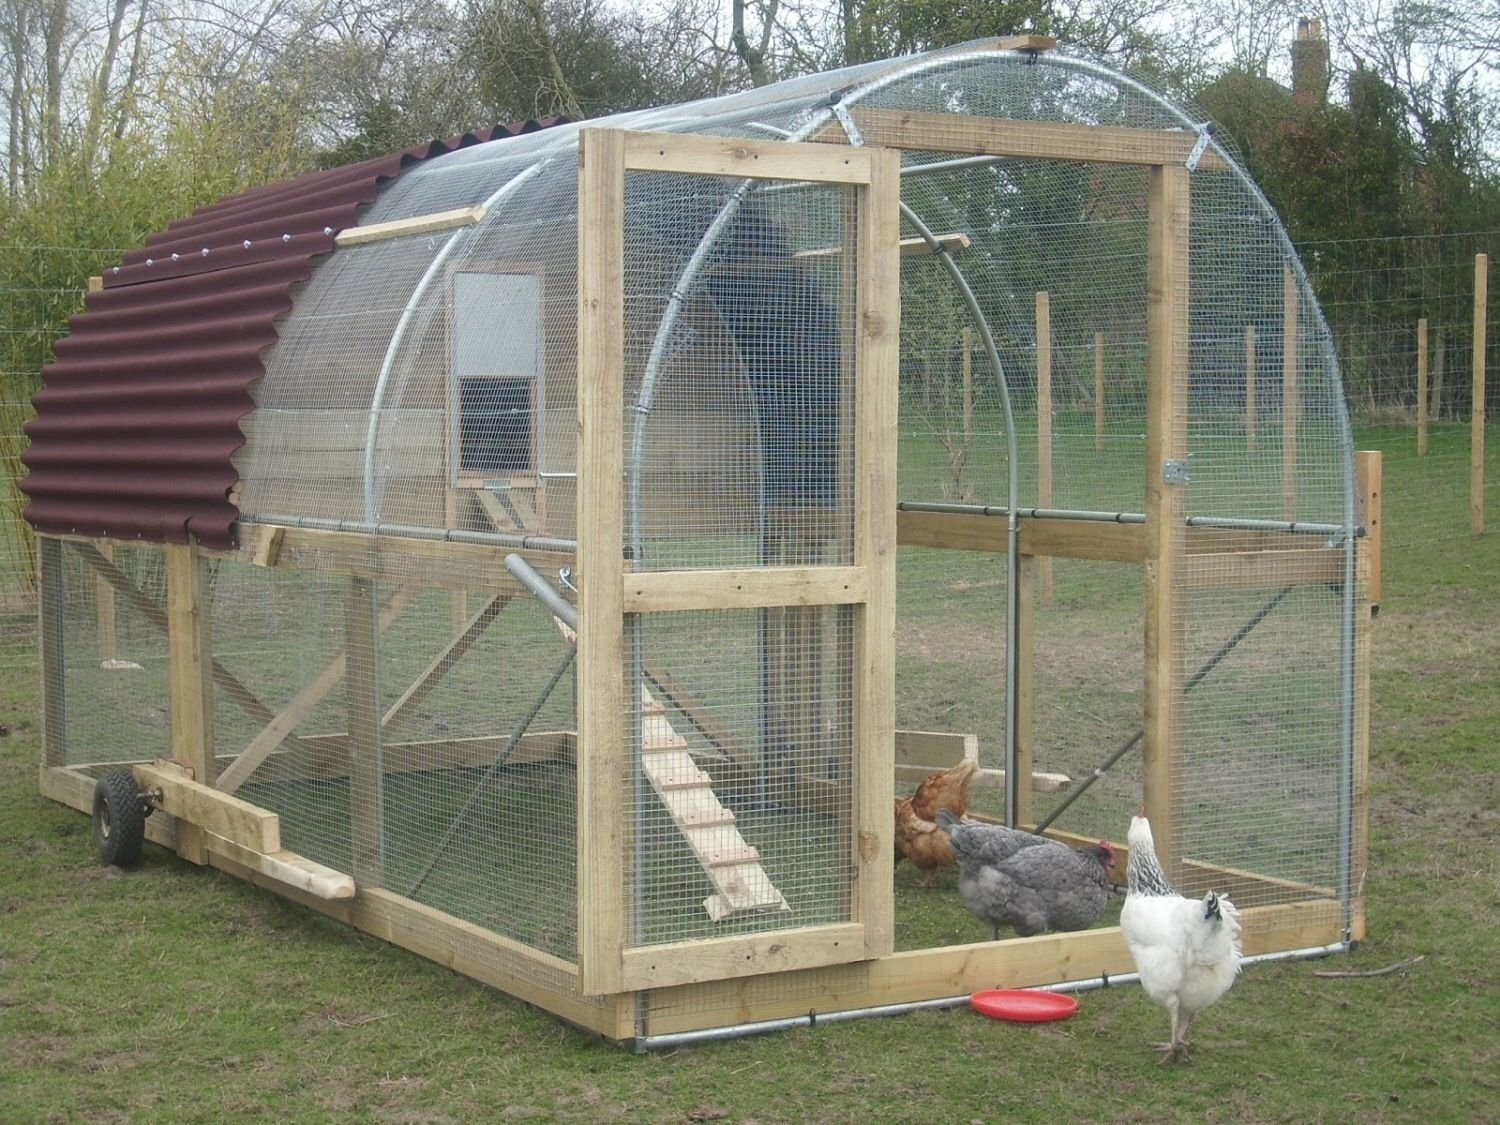 Pin by Sue Waltenbaugh Peppler on Outside | Chickens ...